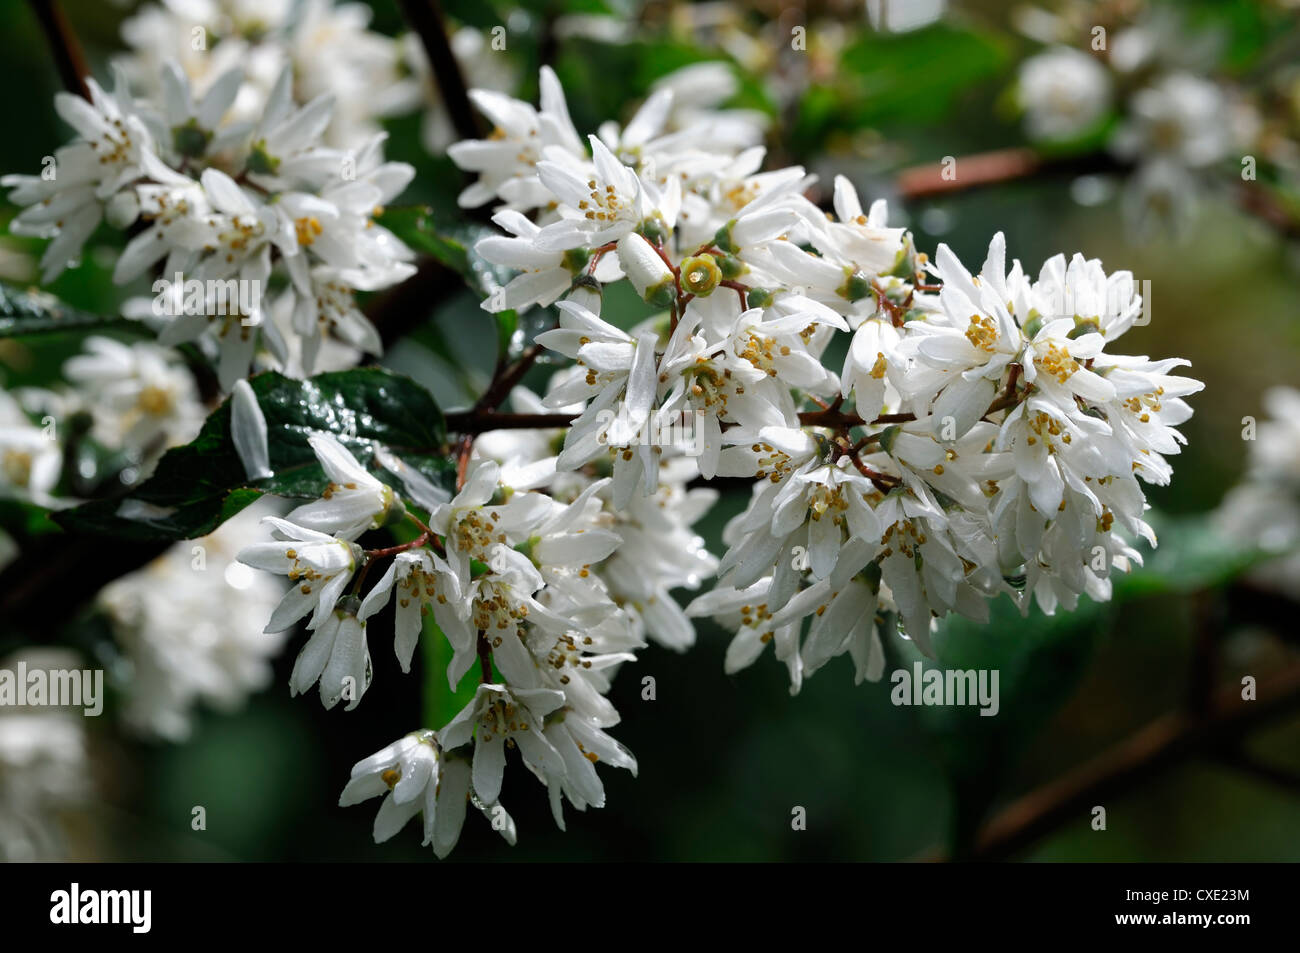 White Flowering Shrubs Stock Photos White Flowering Shrubs Stock